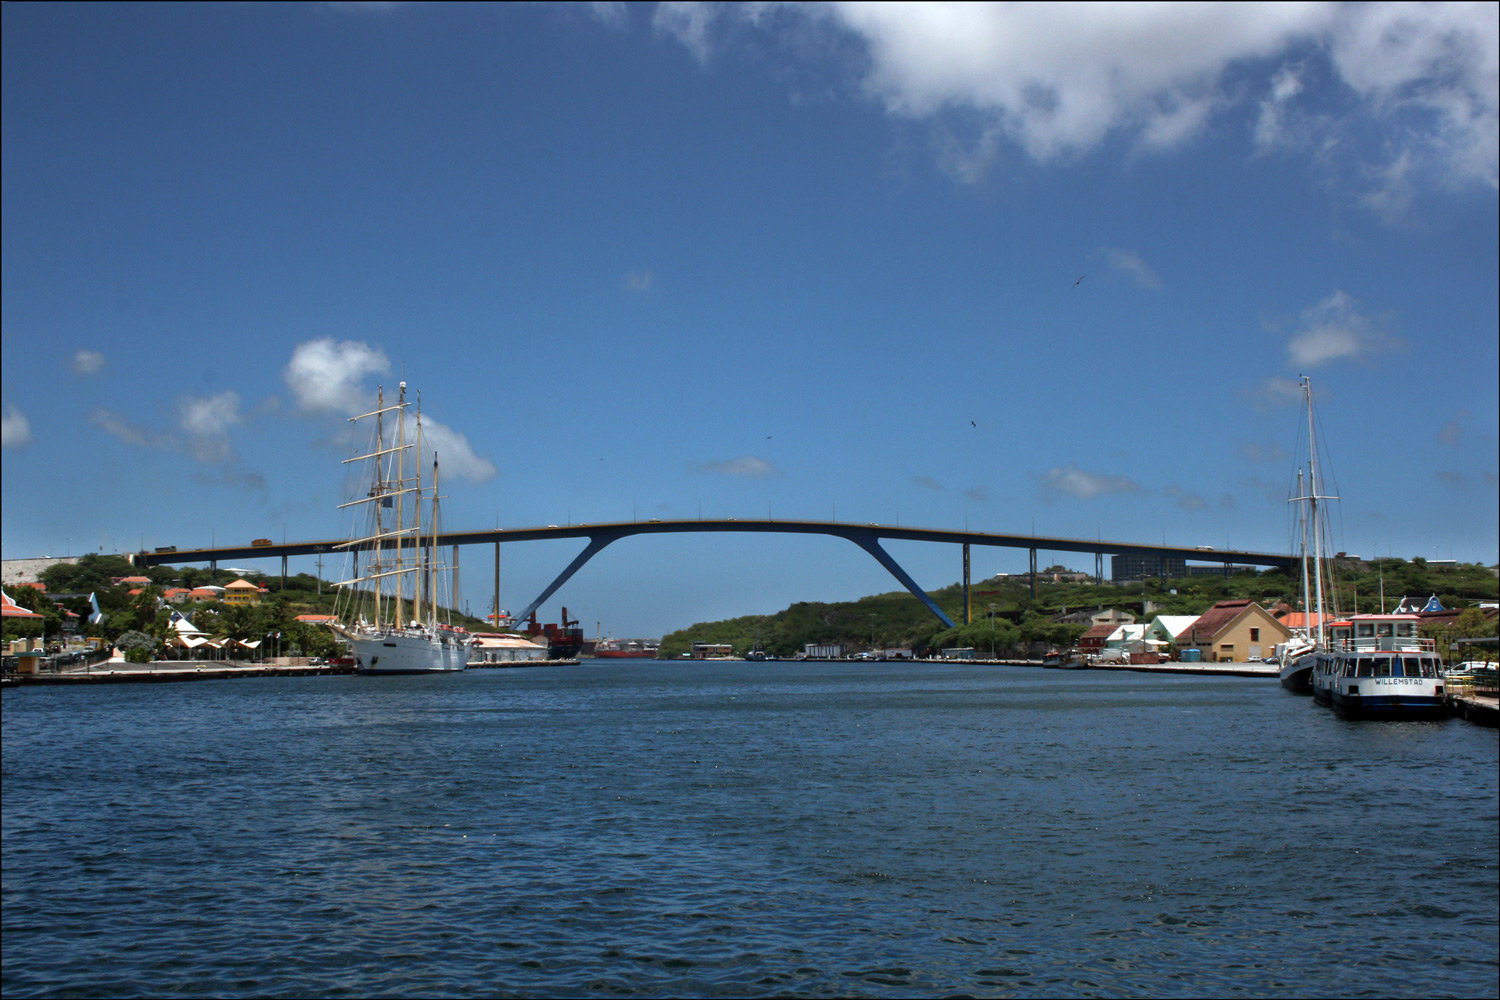 The Queen Juliana Bridge